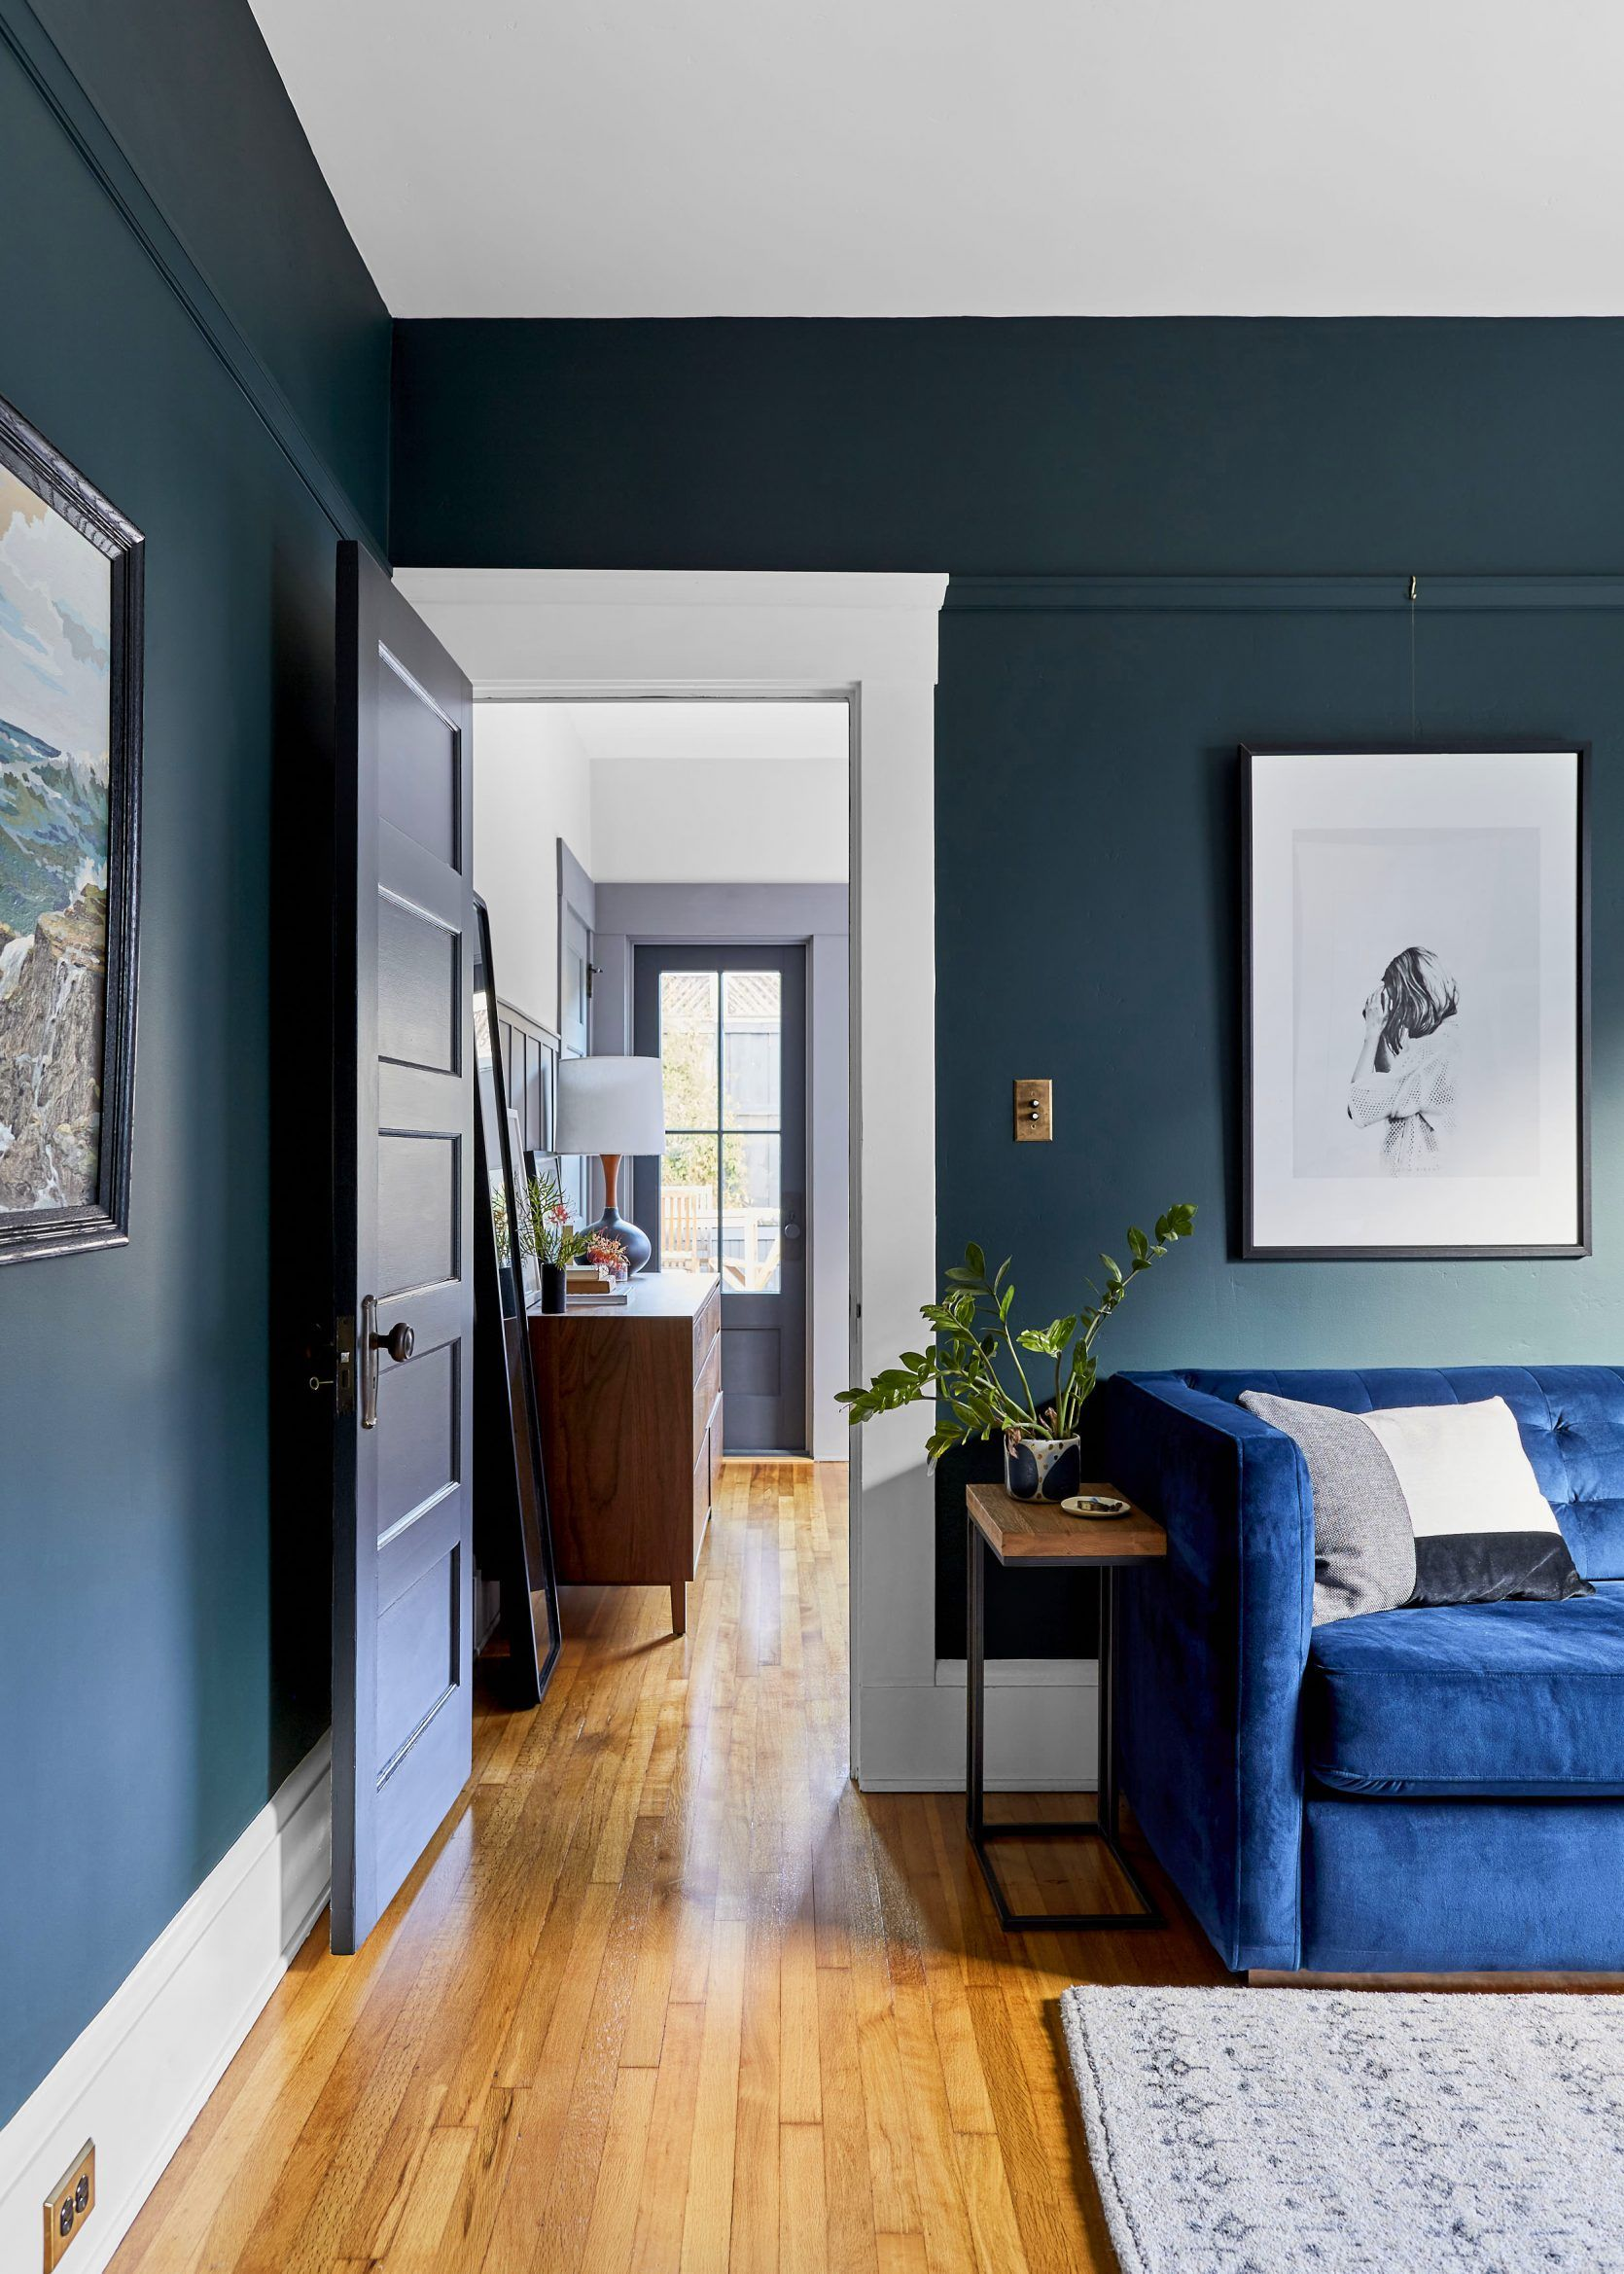 Home Design Ideas For 2019: Paint Colors For Living Room